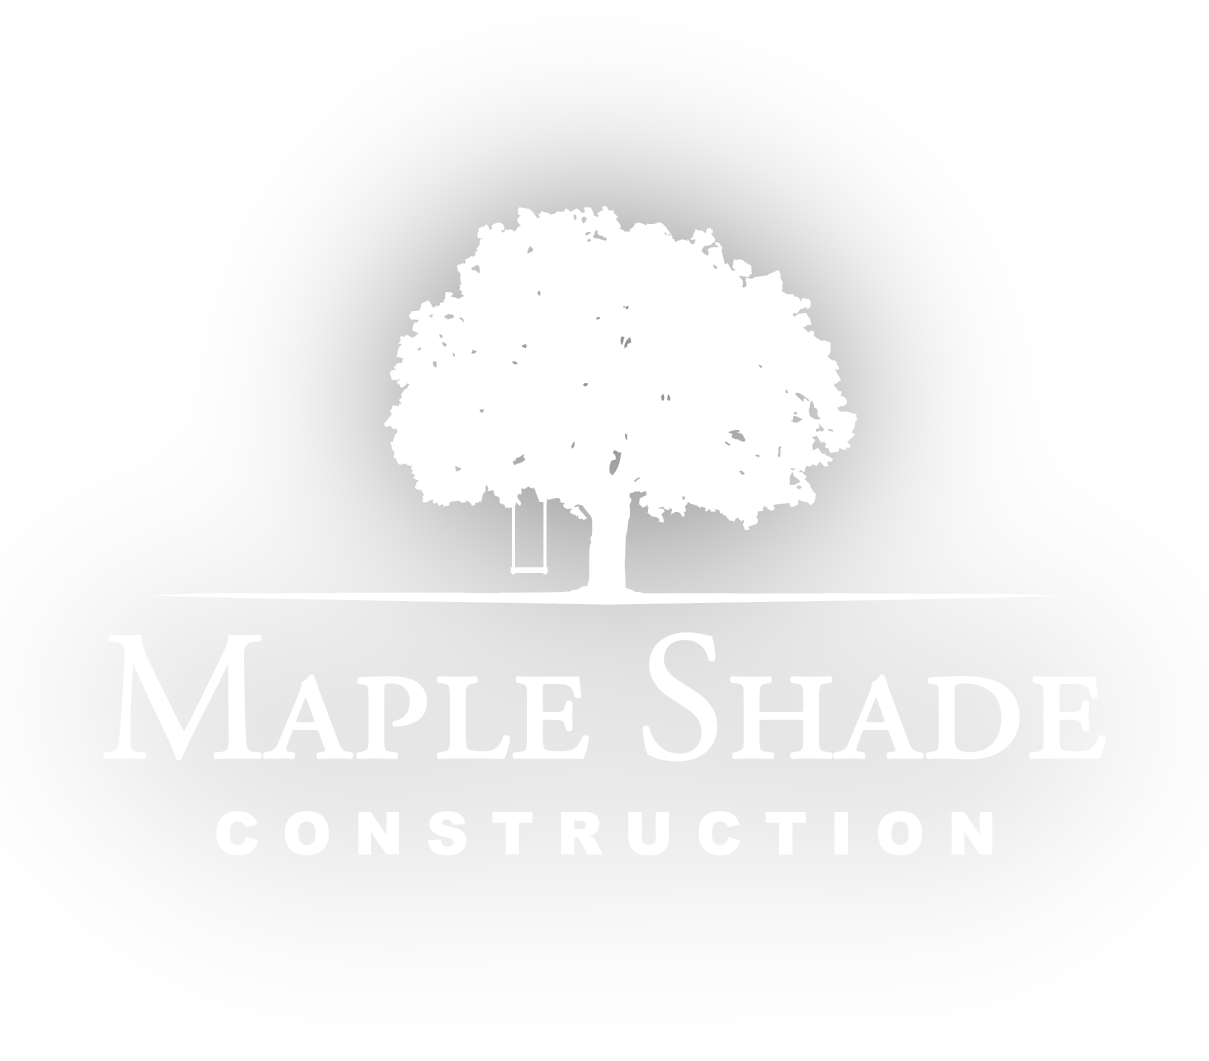 Maple Shade Construction